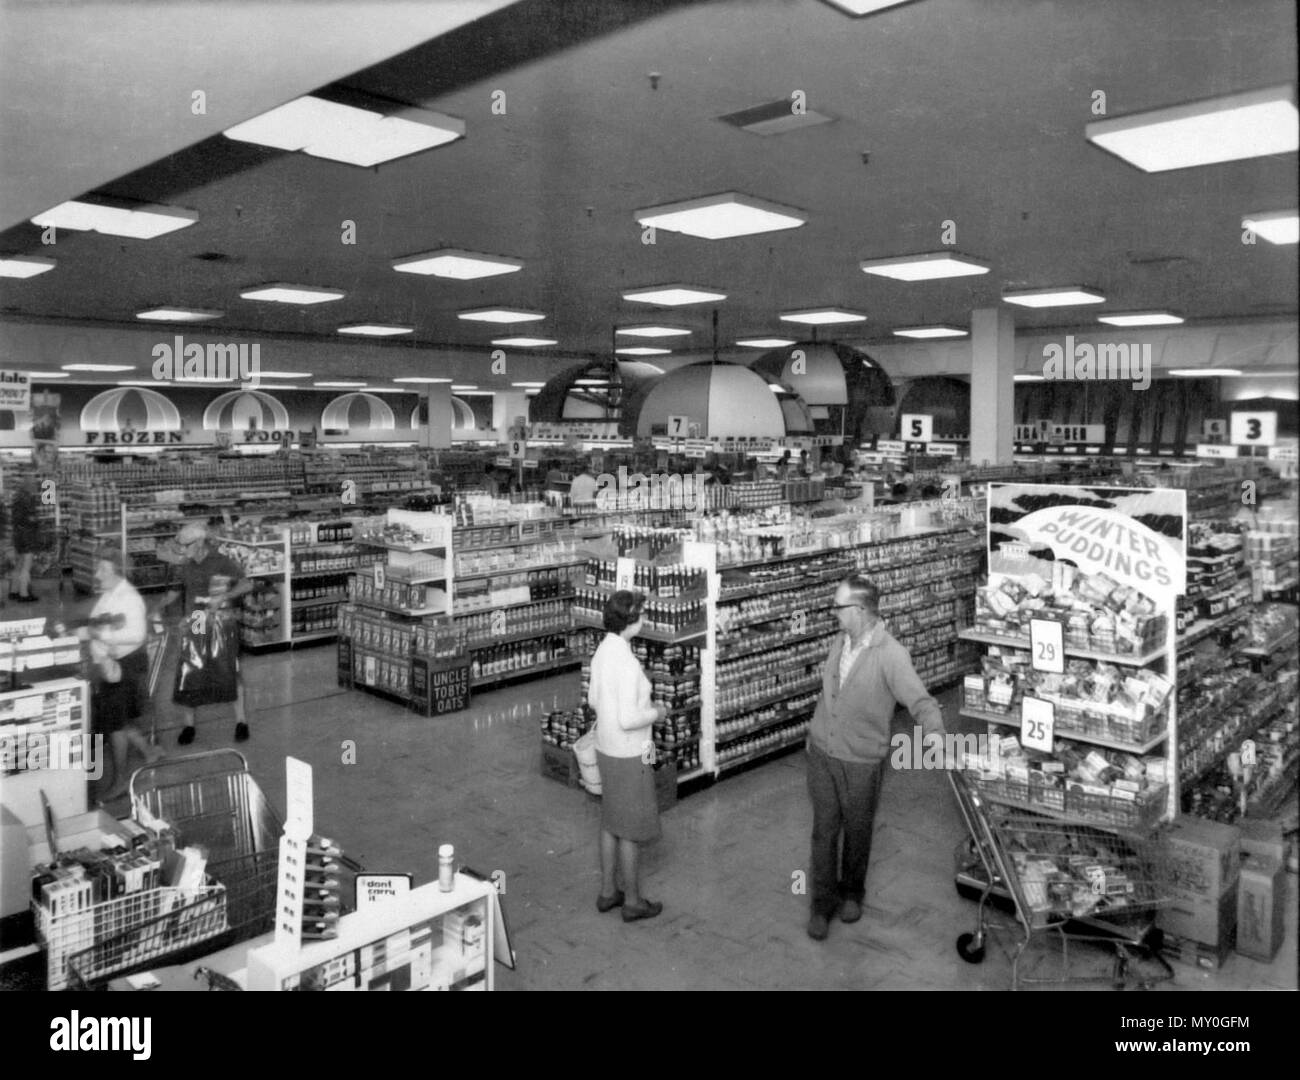 Woolworths, Sundale Shopping Centre, Southport, 18 July 1969. Sundale Shopping Centre opened in 1968 and featured many stored plus a booth for local radio station 4GG. After many tenants moved out in the 1980s, the centre closed in 1990. It was demolished in 2003 to make way for high-rise apartments. Stock Photo